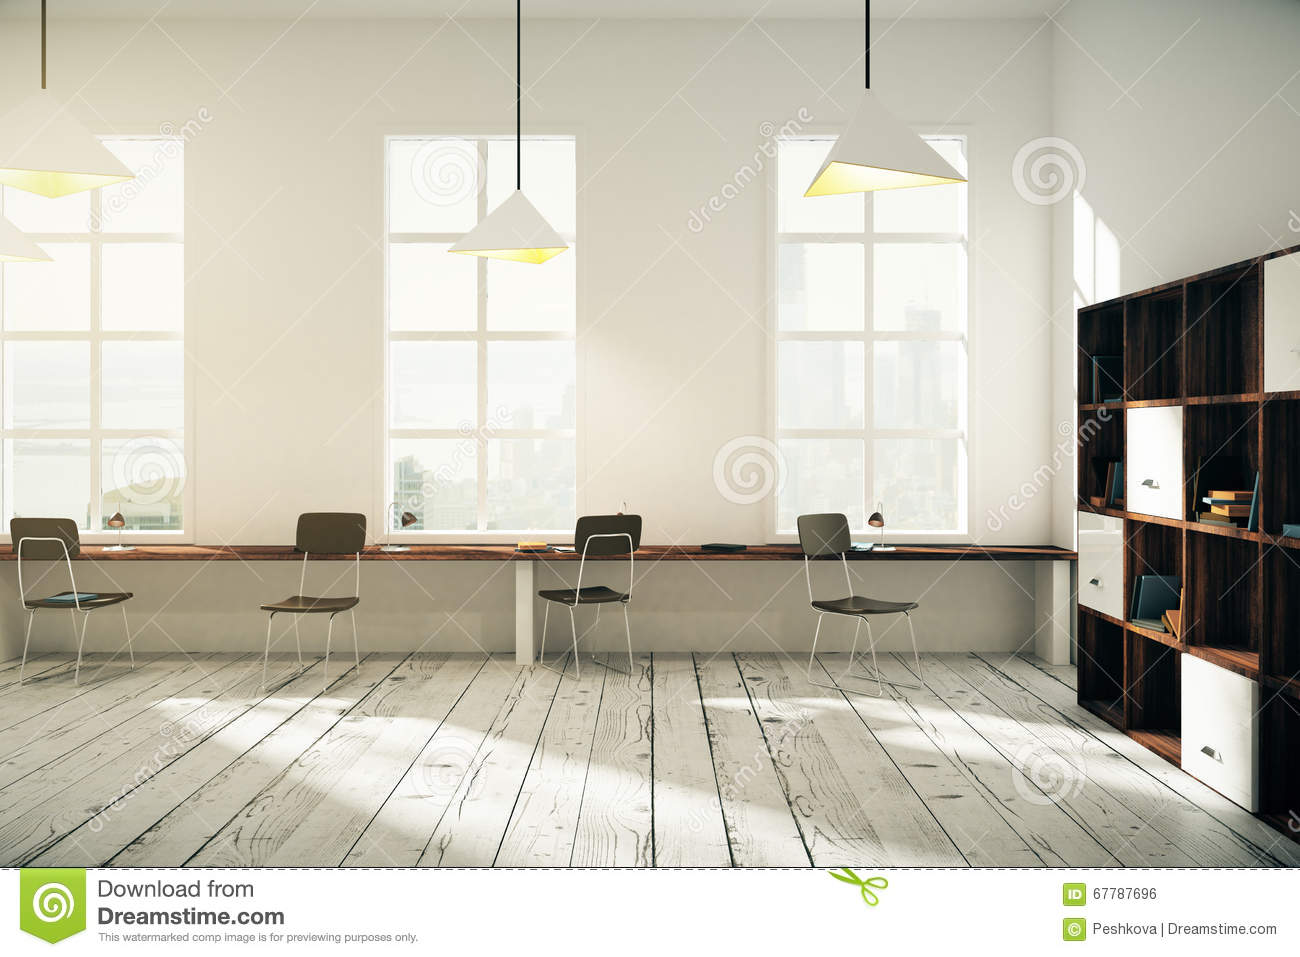 Design Floor Interior Office